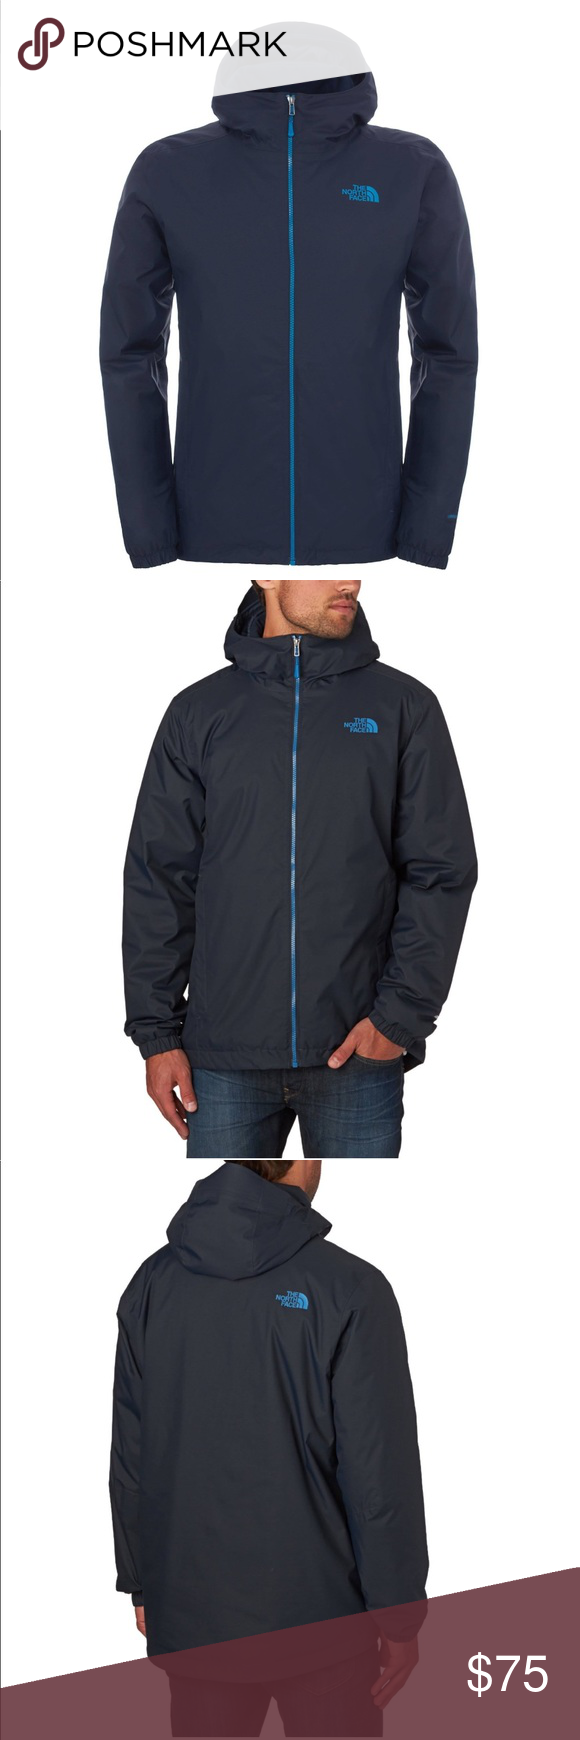 The North Face Men S Quest Insulated Jacket Insulated Jackets North Face Mens The North Face [ 1740 x 580 Pixel ]